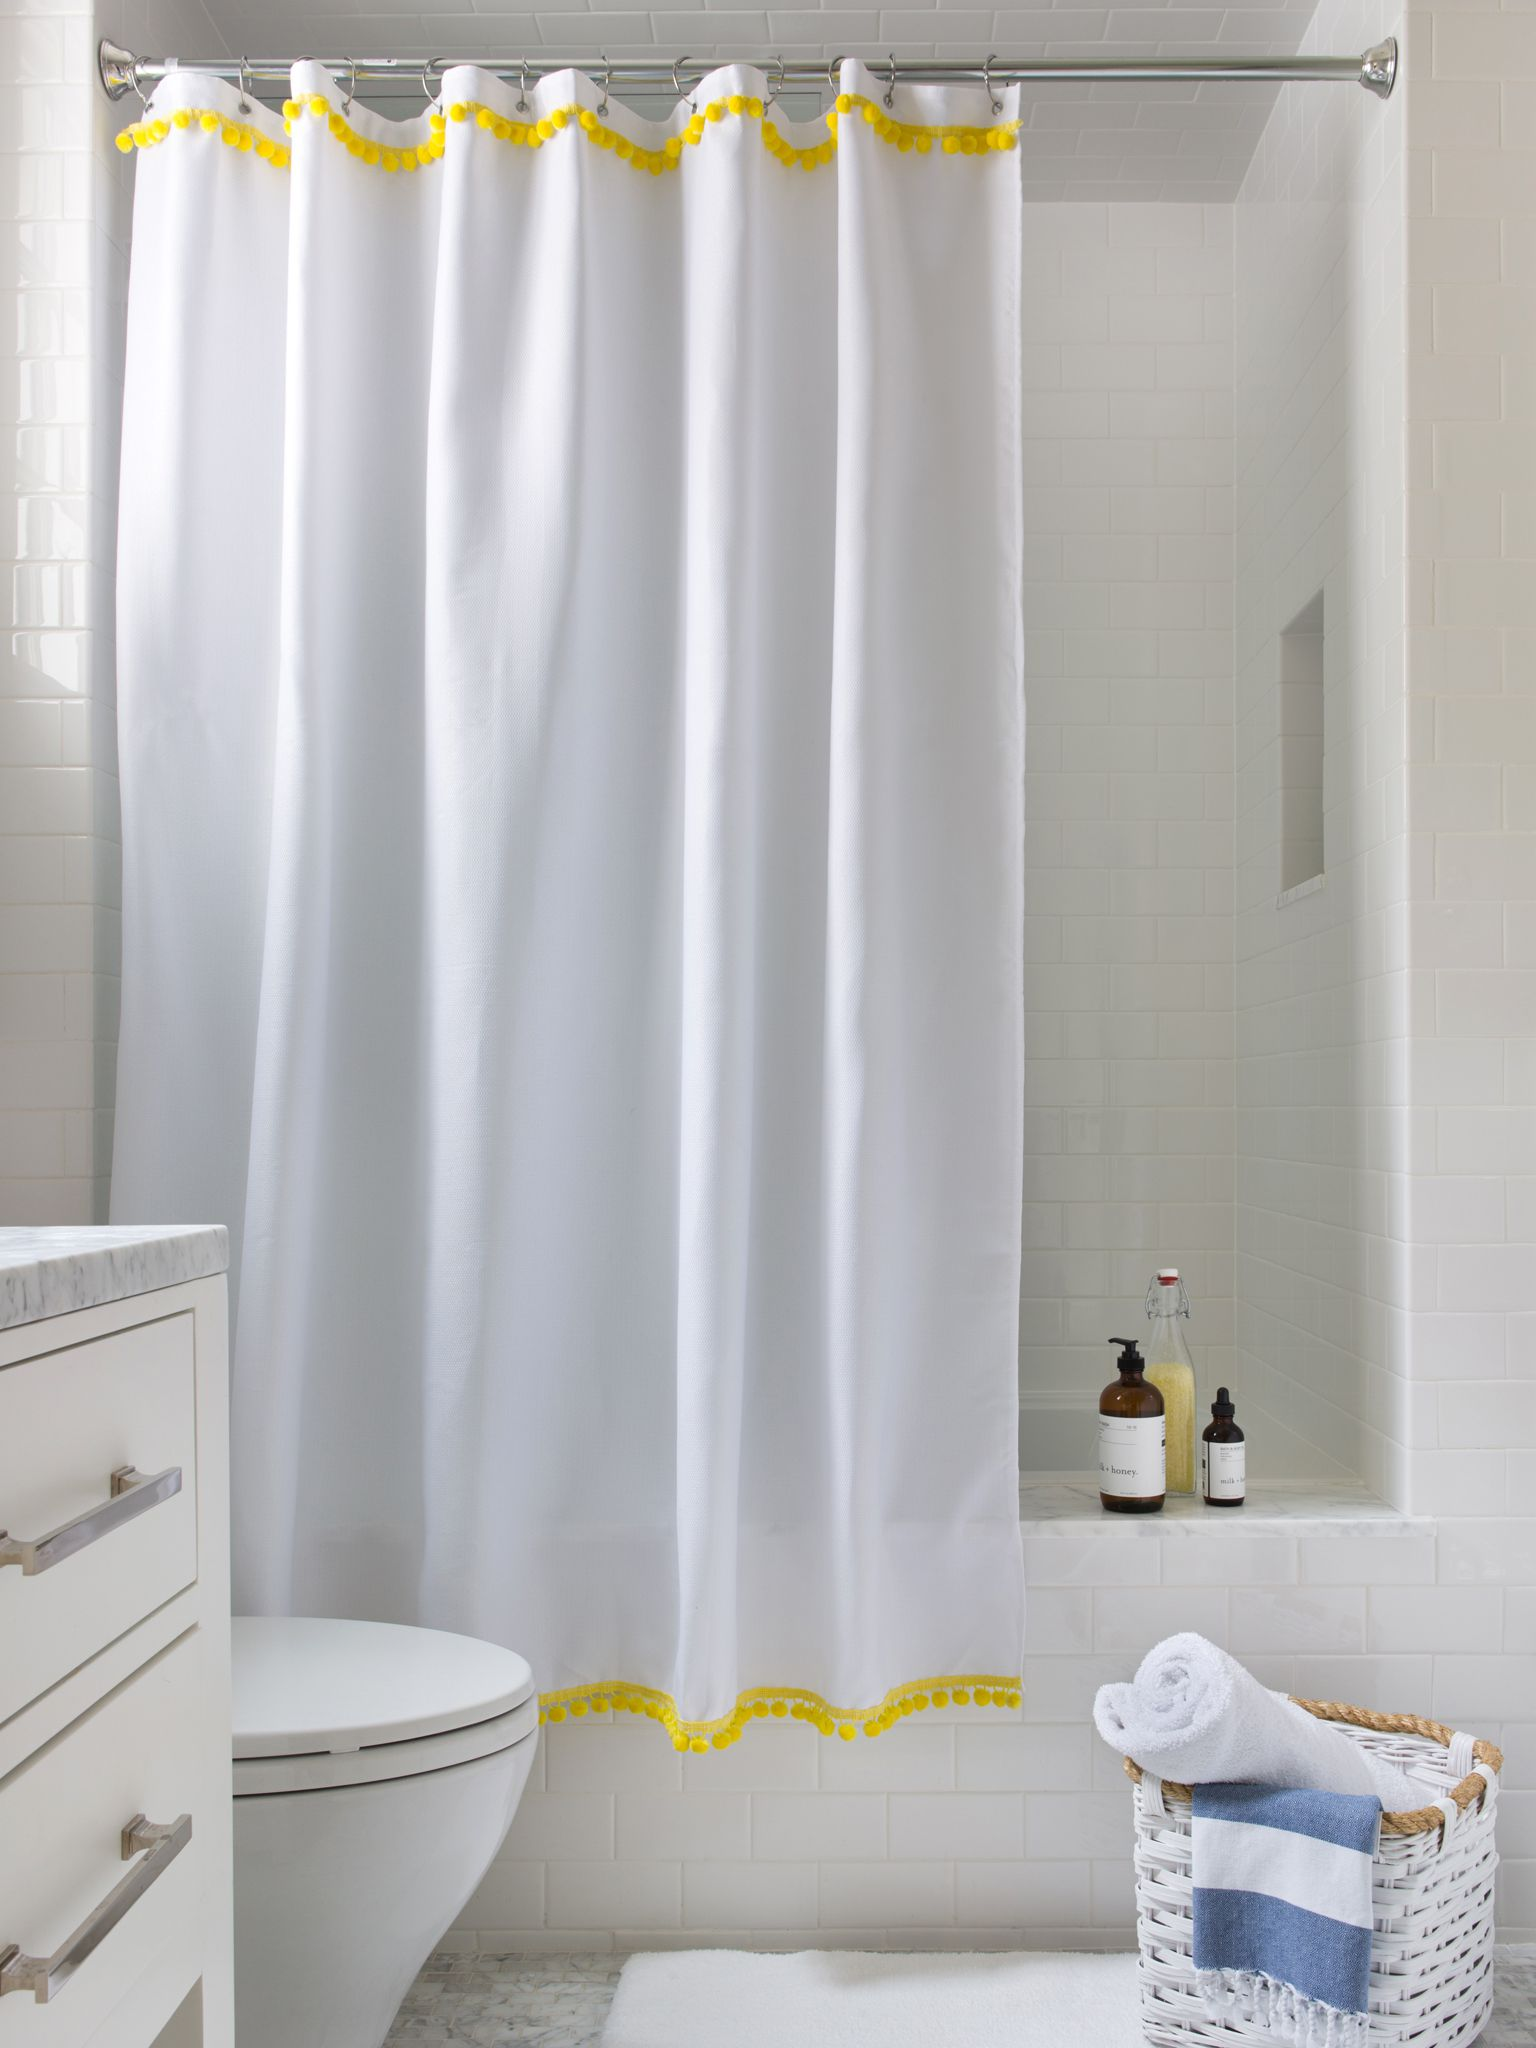 Amazing Bathtub With Bathroom Curtain IDeas also Toilet Plus Rattan Basket